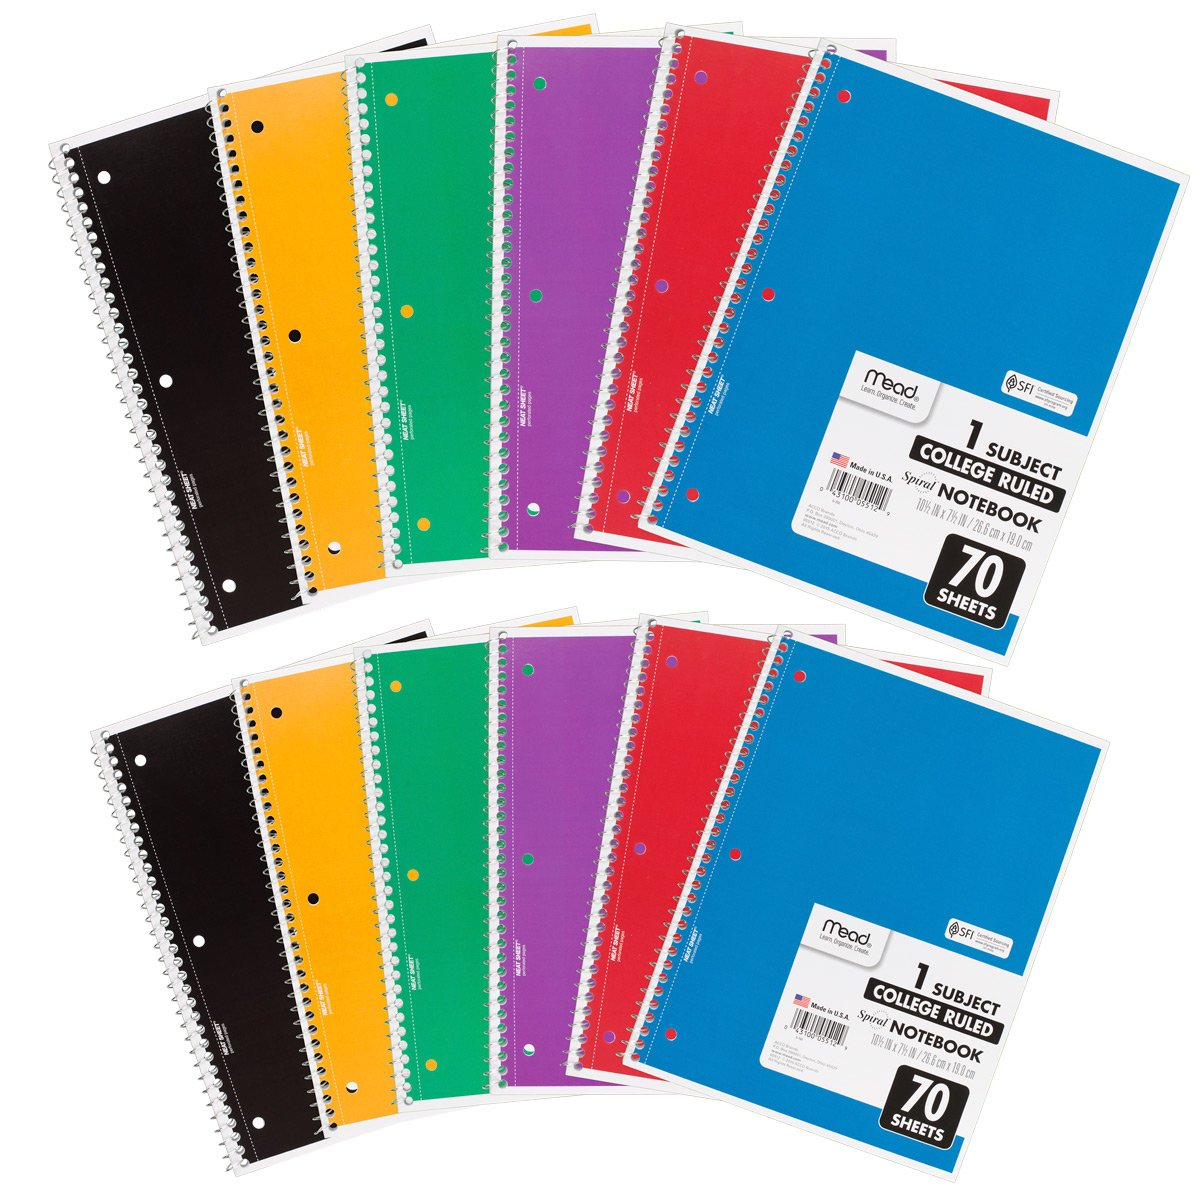 Mead Spiral Notebooks, 1 Subject, College Ruled Paper, 70 Sheets, 10-1/2 x 7-1/2, Assorted Colors, 12 Pack (73703)